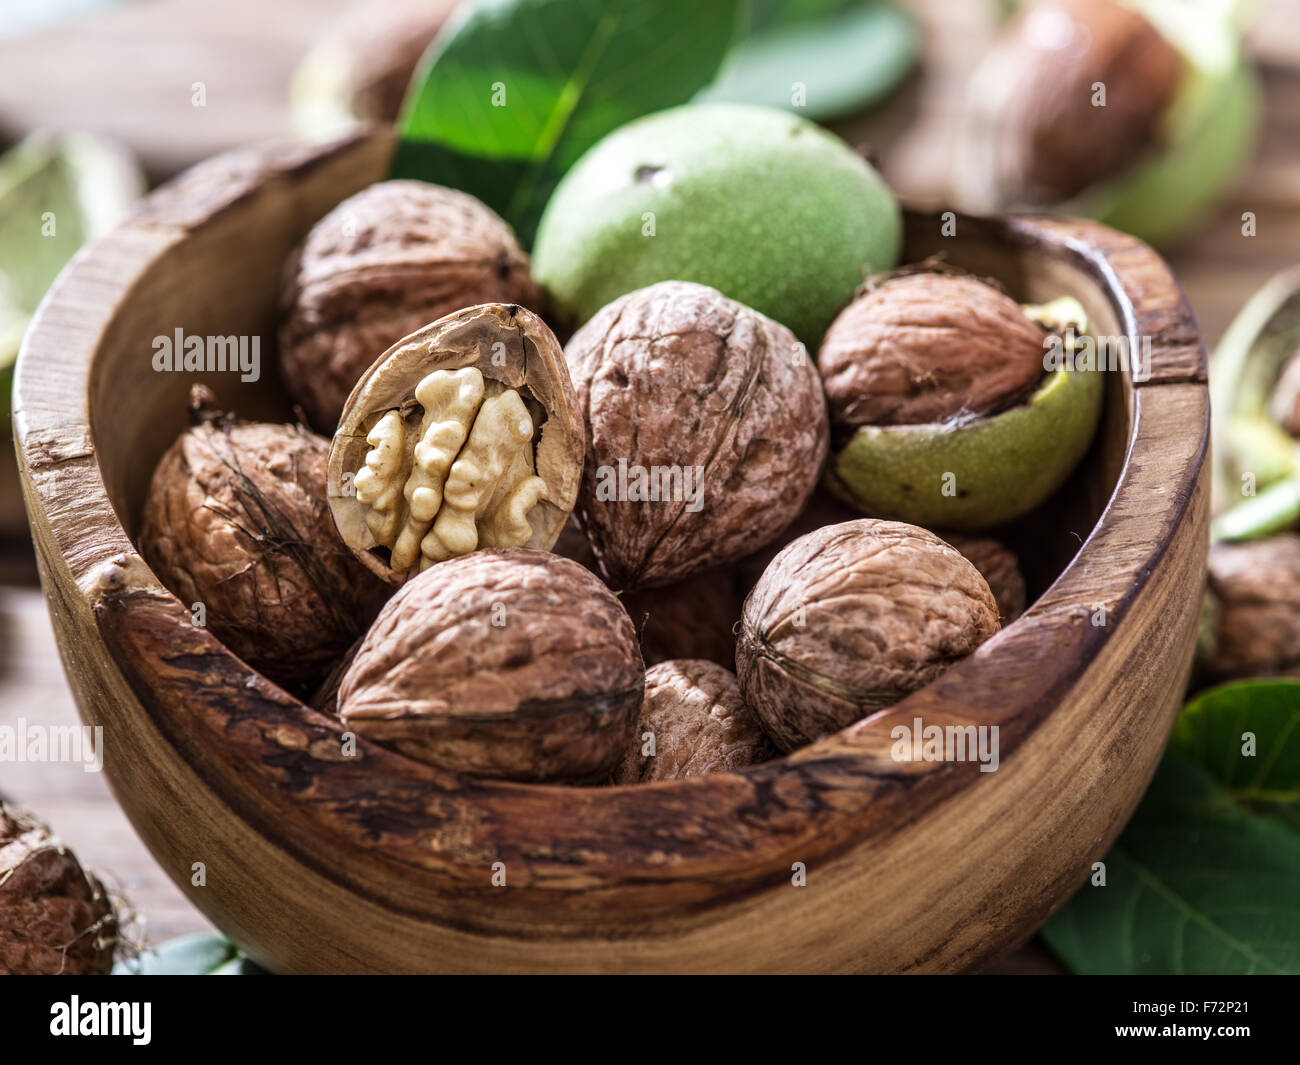 Walnuts in the wooden bowl on the table. Stock Photo